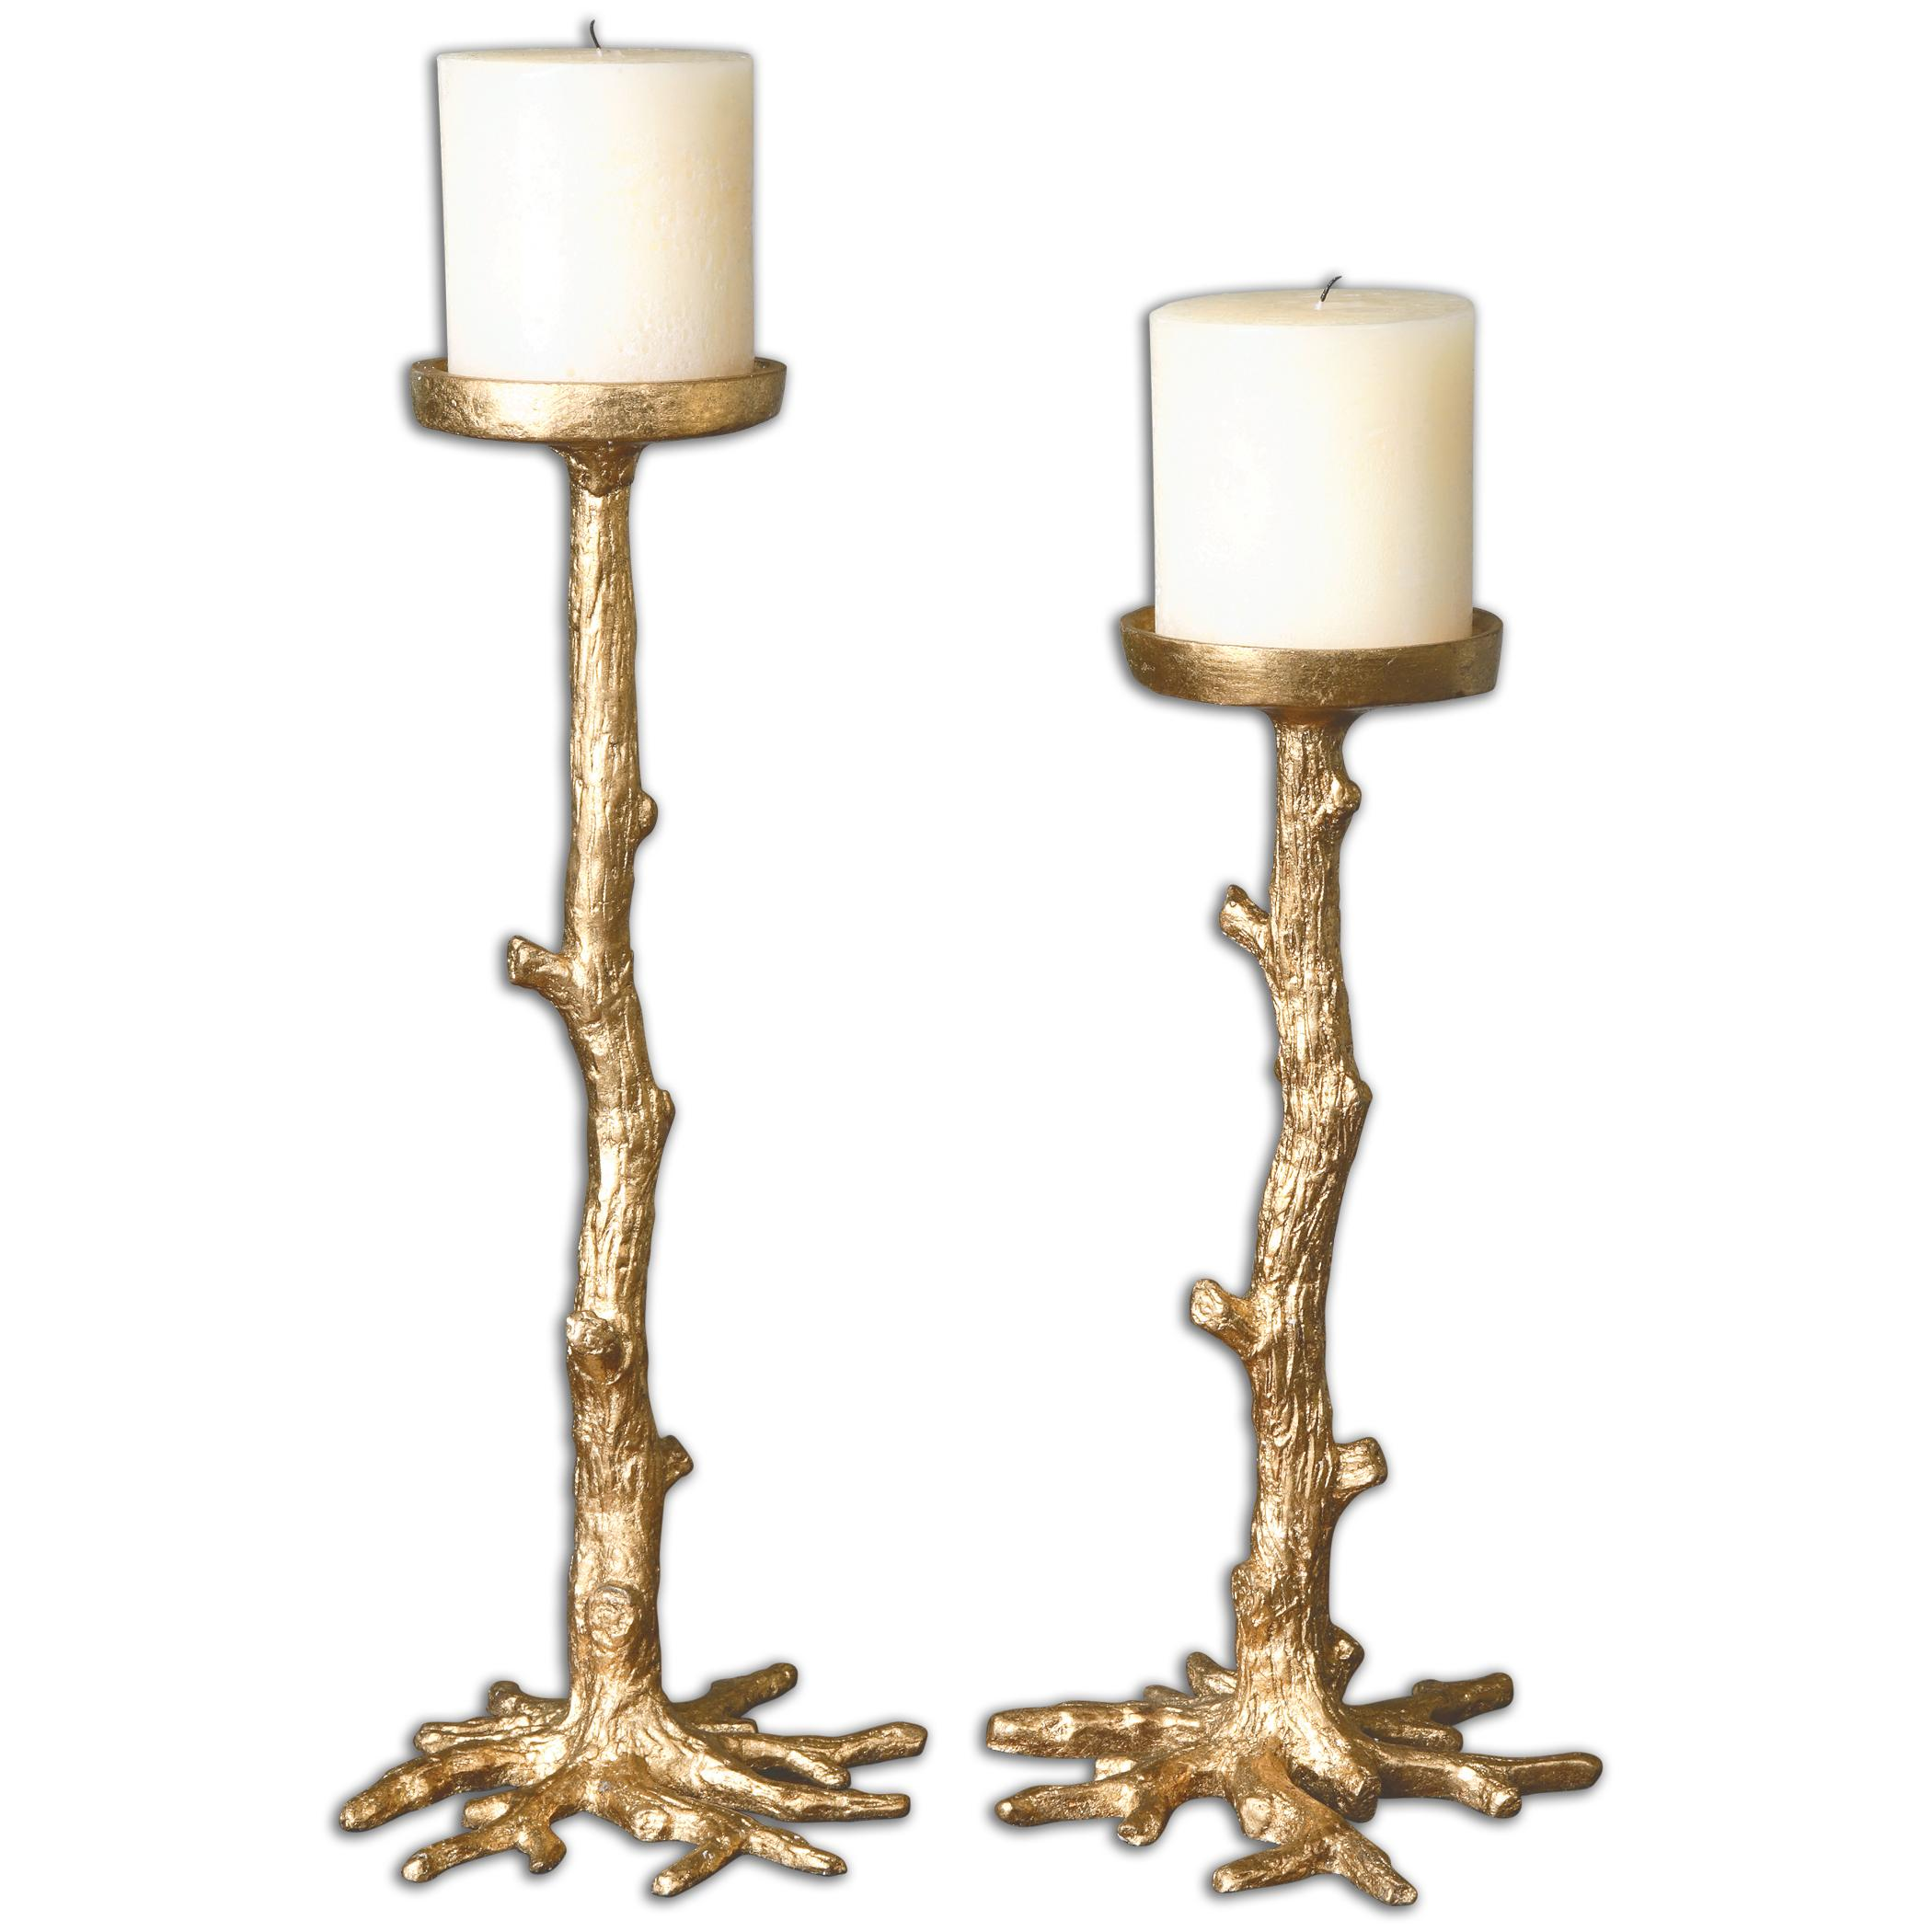 Uttermost Accessories Maple Gold Candleholders, Set of 2 - Item Number: 19886